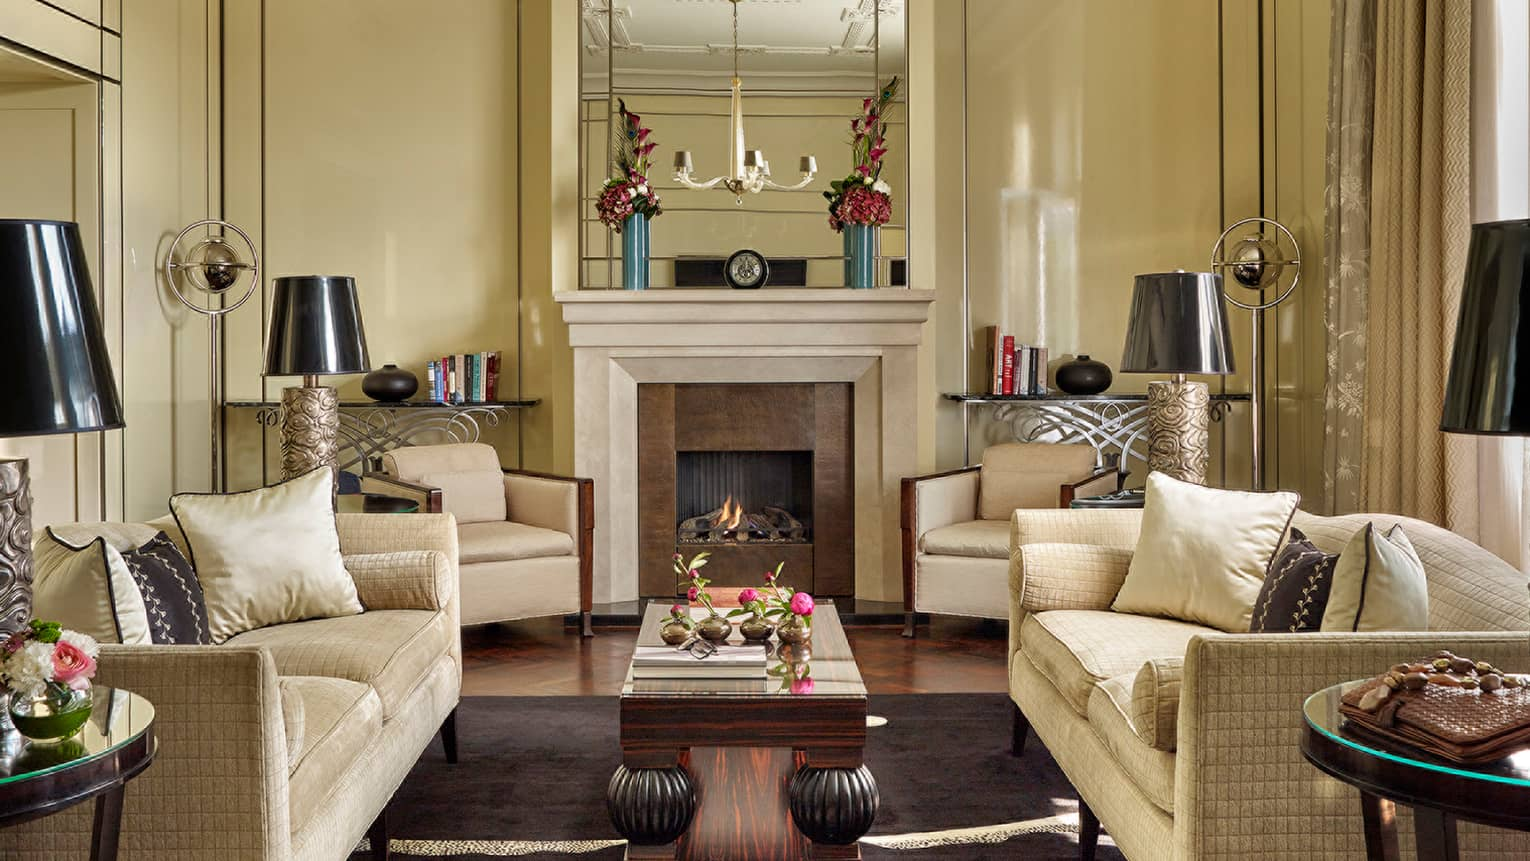 Budapest Royal Suite with cream sofas and armchairs around fireplace mantel